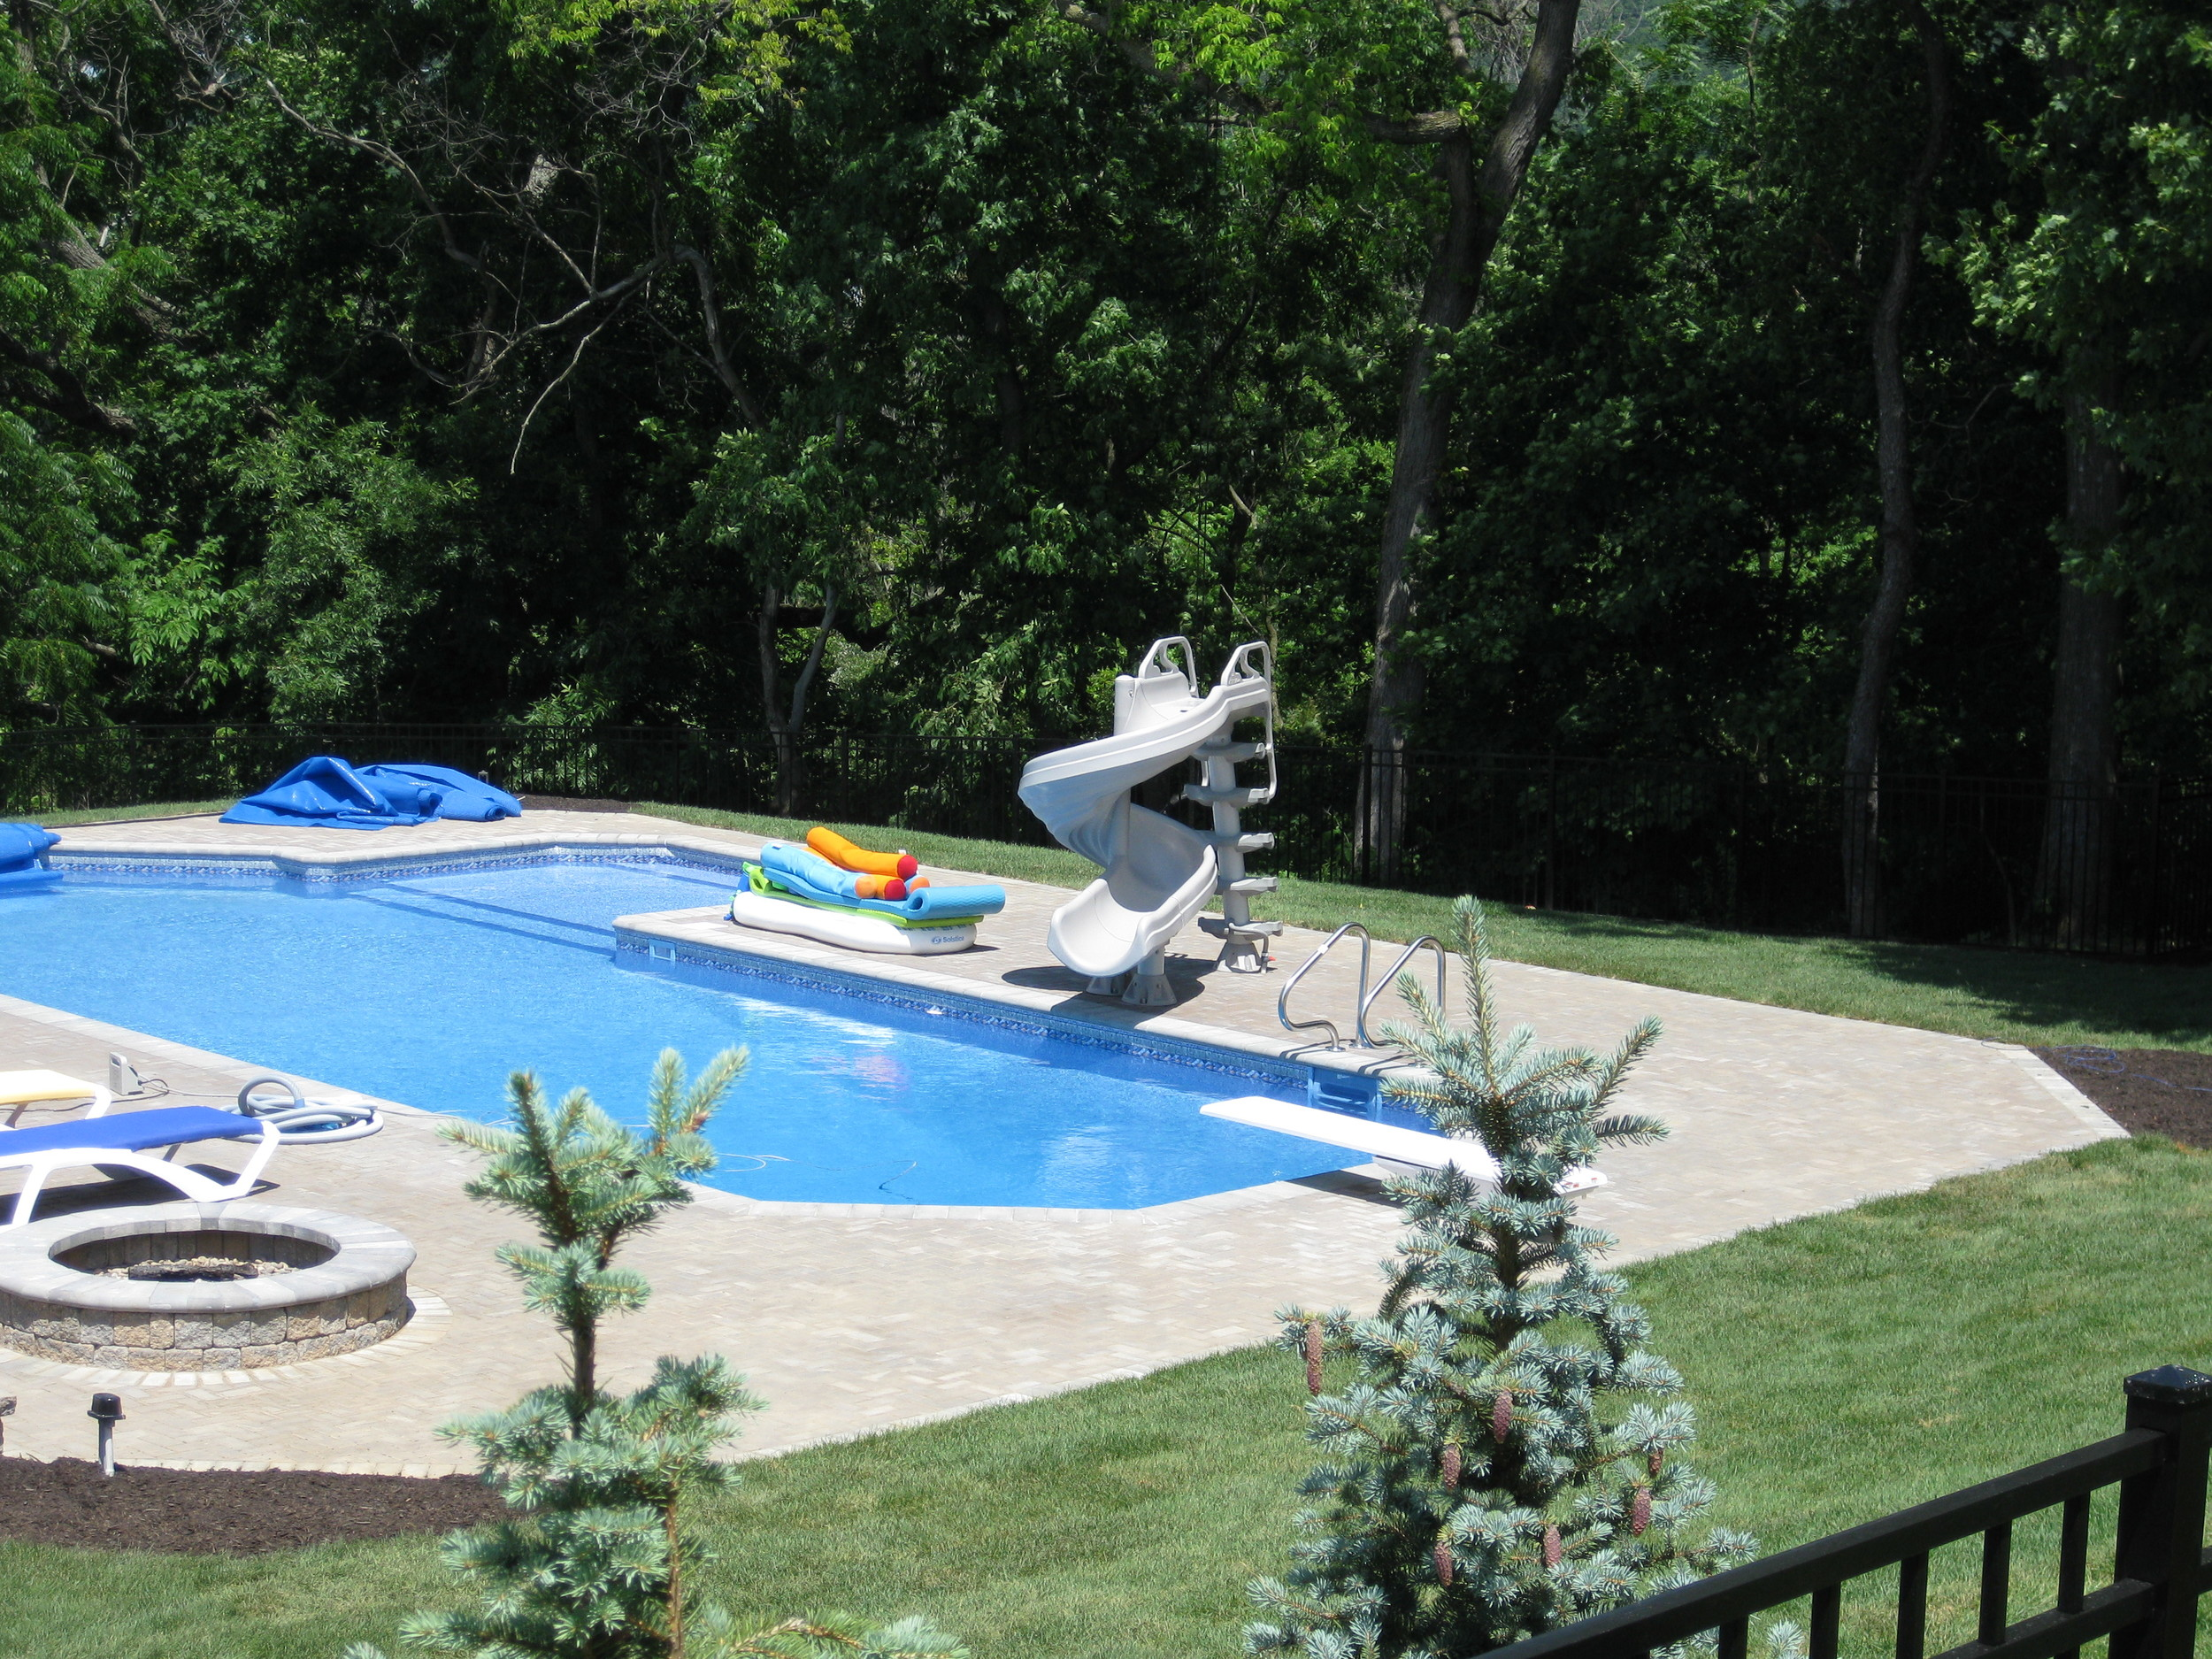 Pool Party Central with this Custom Pool